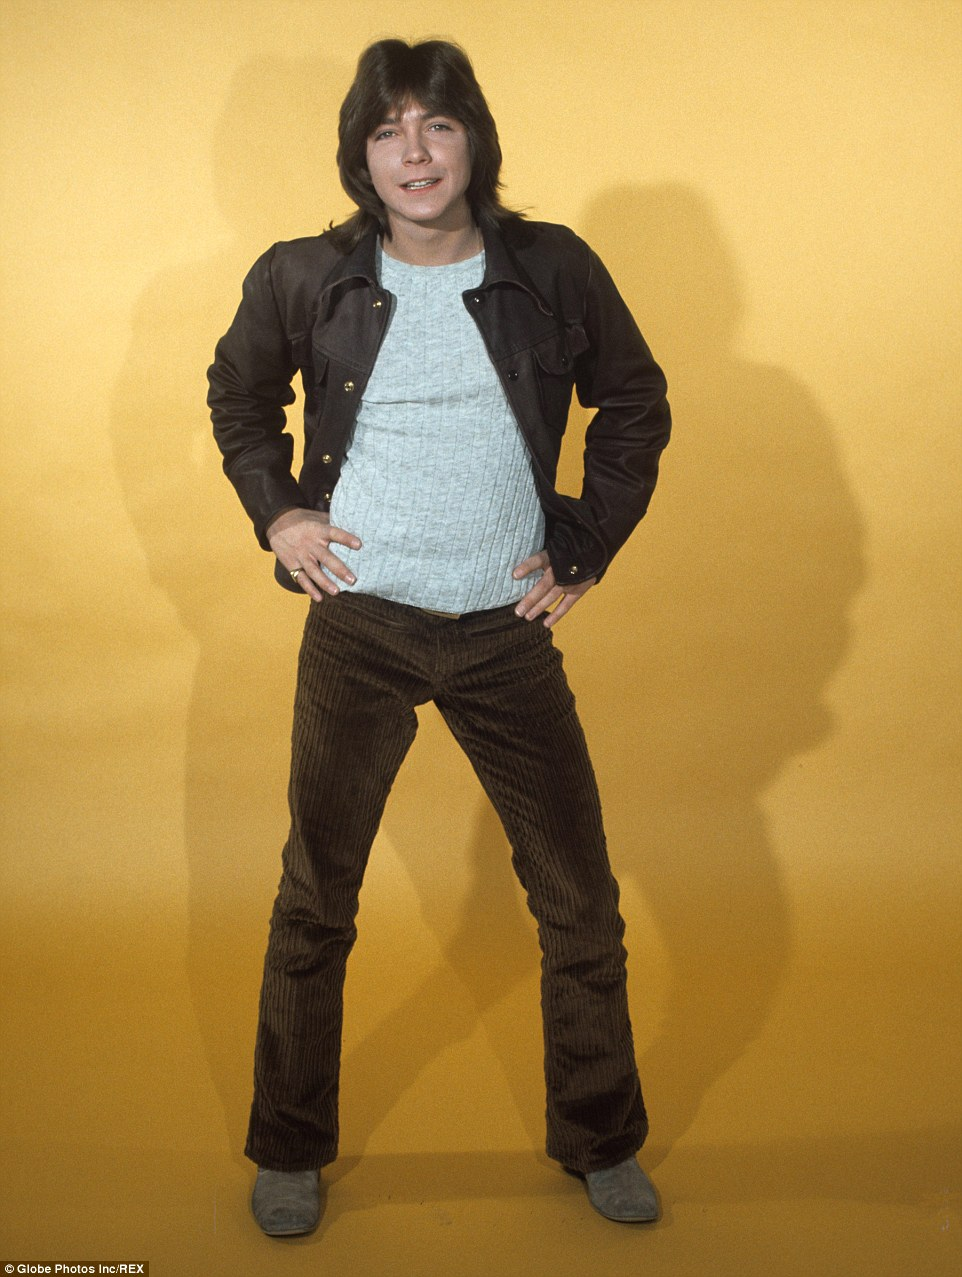 Star: Cassidy rose to fame after he was cast in The Partridge Family and went on to have a phenomenally successful pop career in the 70s